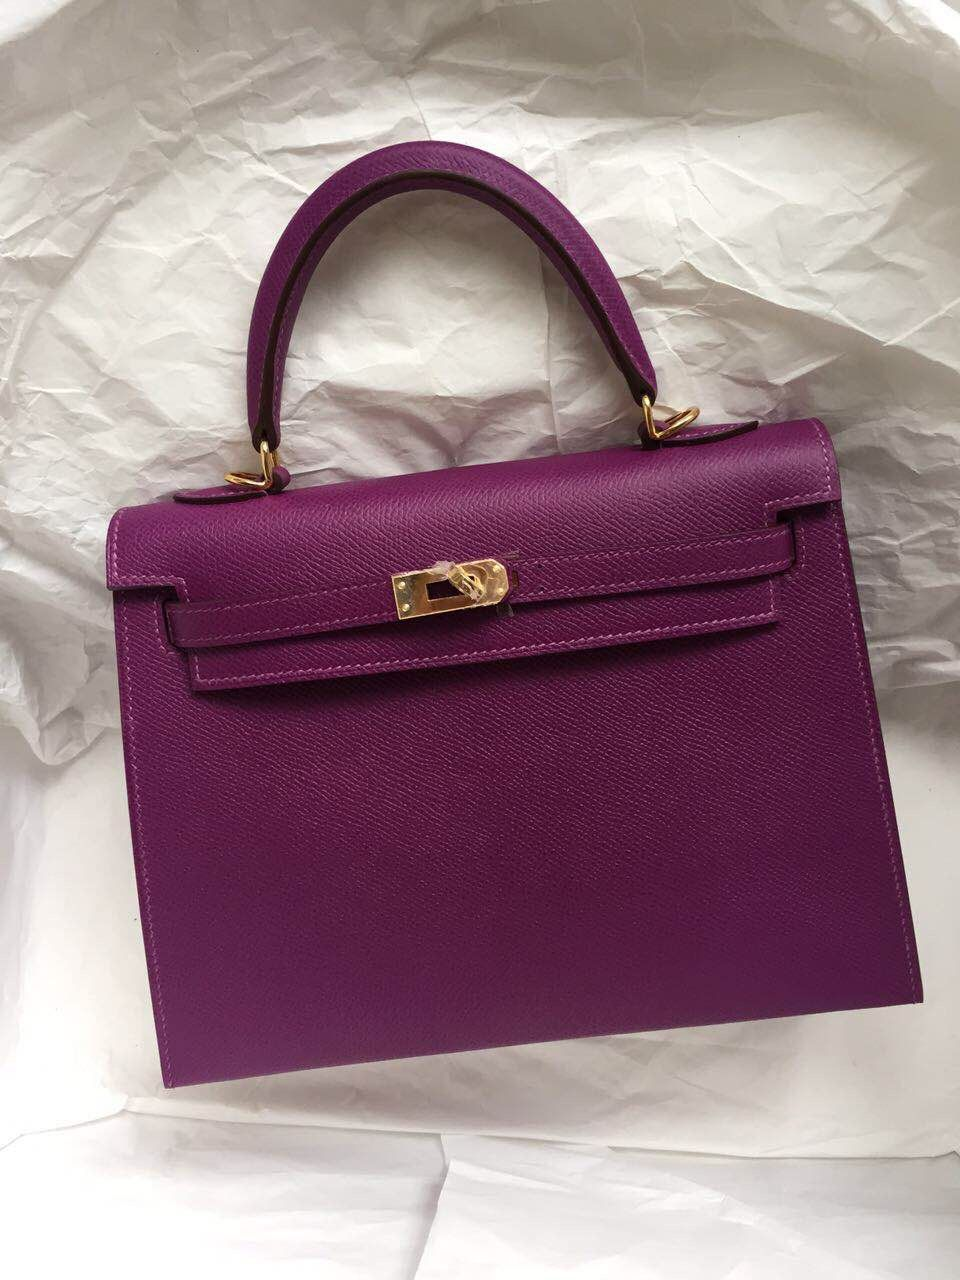 8c6f6c39085 Image result for purple epsom sellier hermes kelly   My Style ...